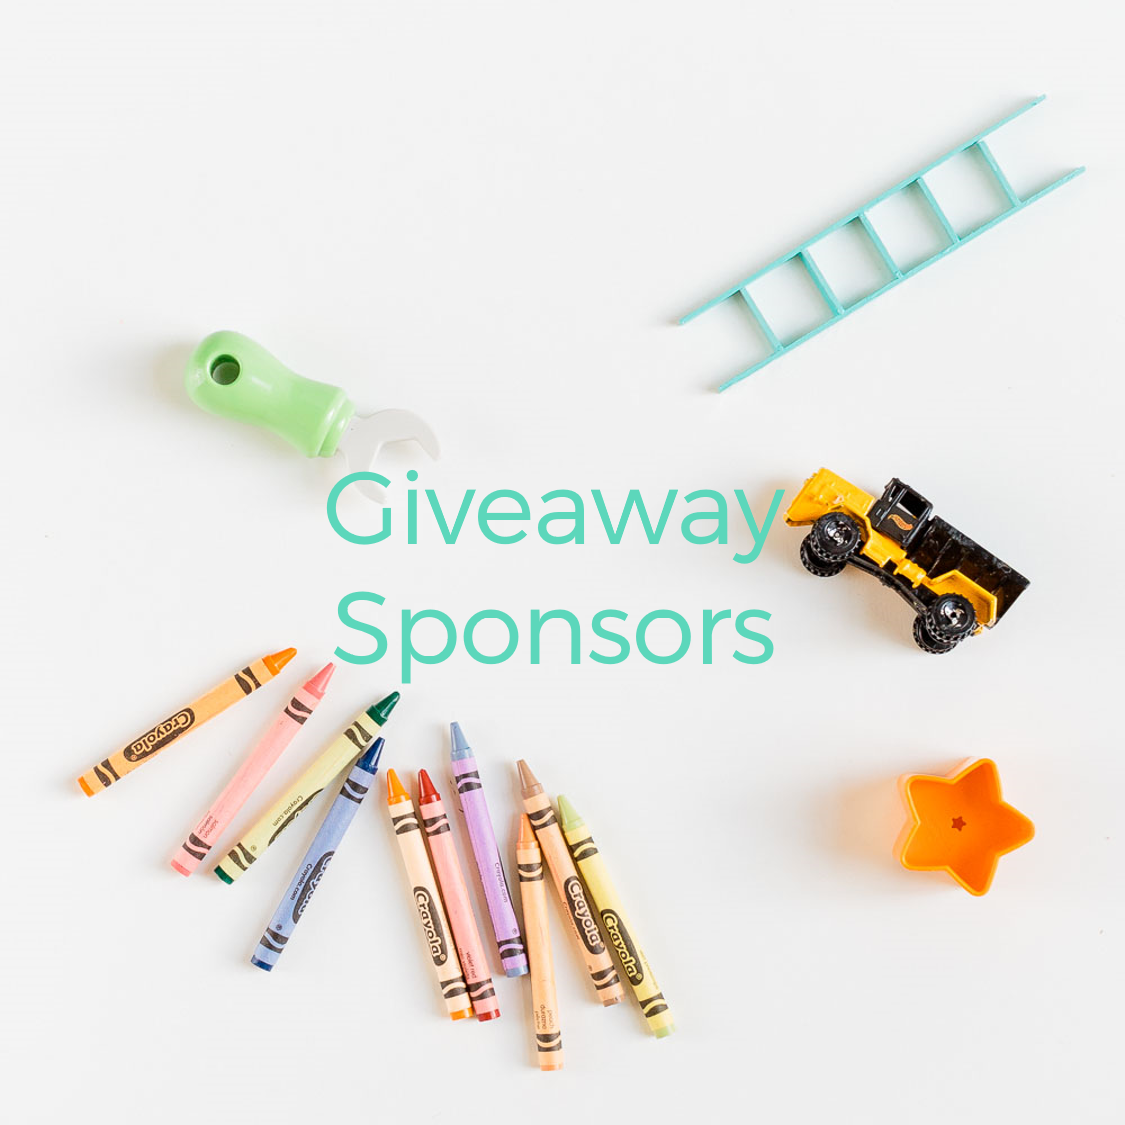 GIVEAWAY SPONSORS     You provide:     12 free samples or coupons for your product/service for our attendees.    We provide you:    - Shout out on our Instagram and Facebook to our 3,000+followers  - Placement on our event page on our website  - Quarter page spot in our Retreat Guidebook